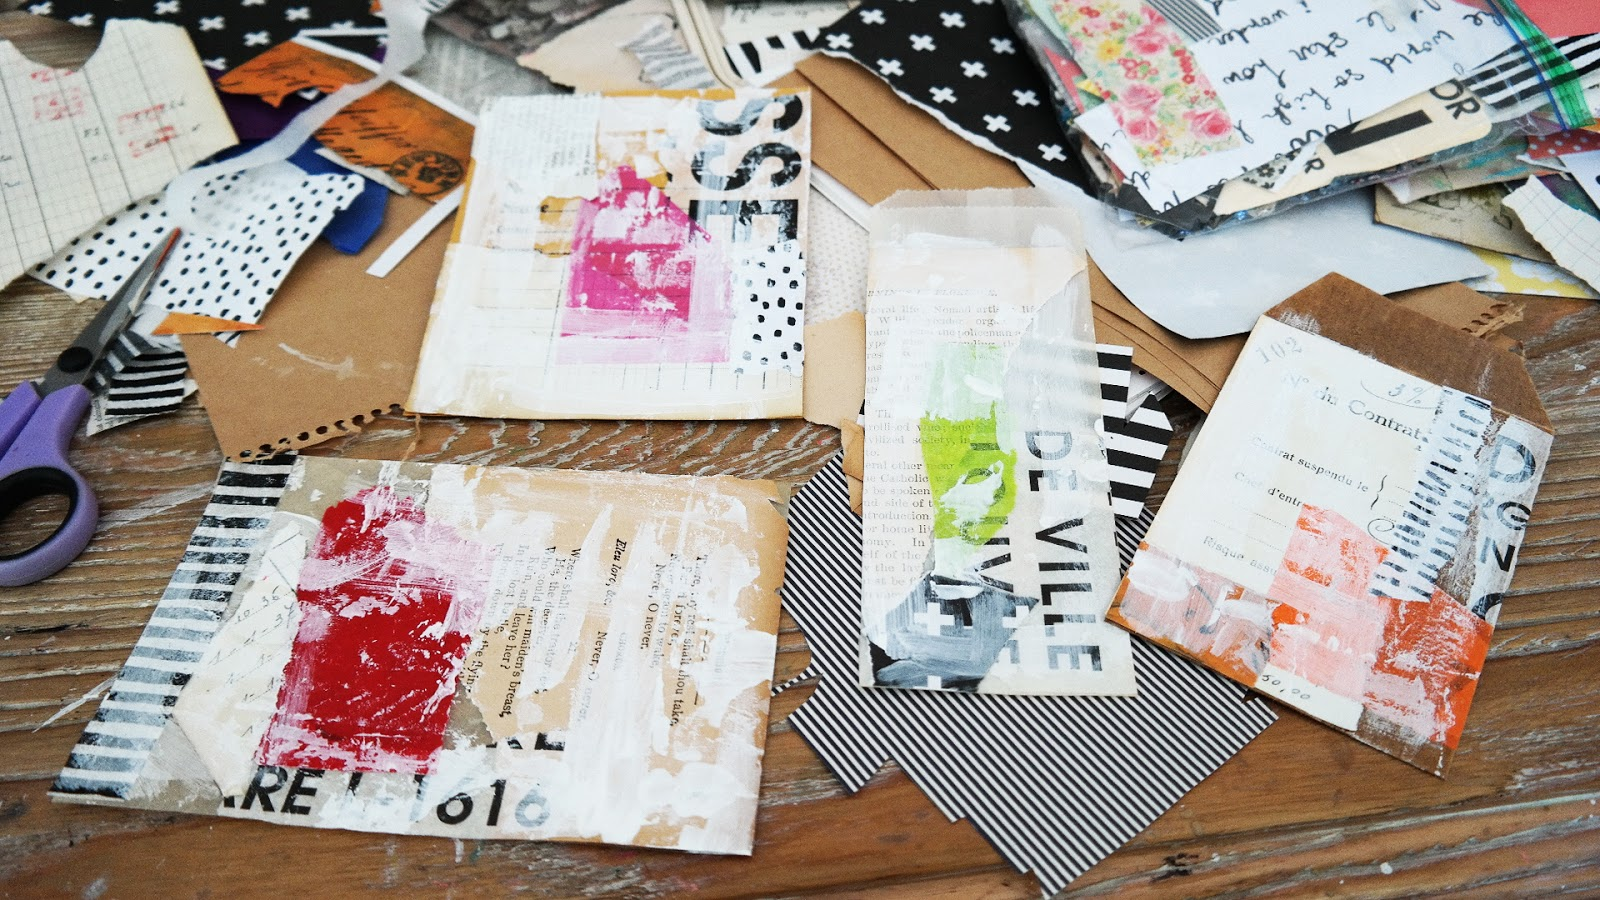 Artful Play: Whimsical Collages Using Tim Holtz Paper Dolls